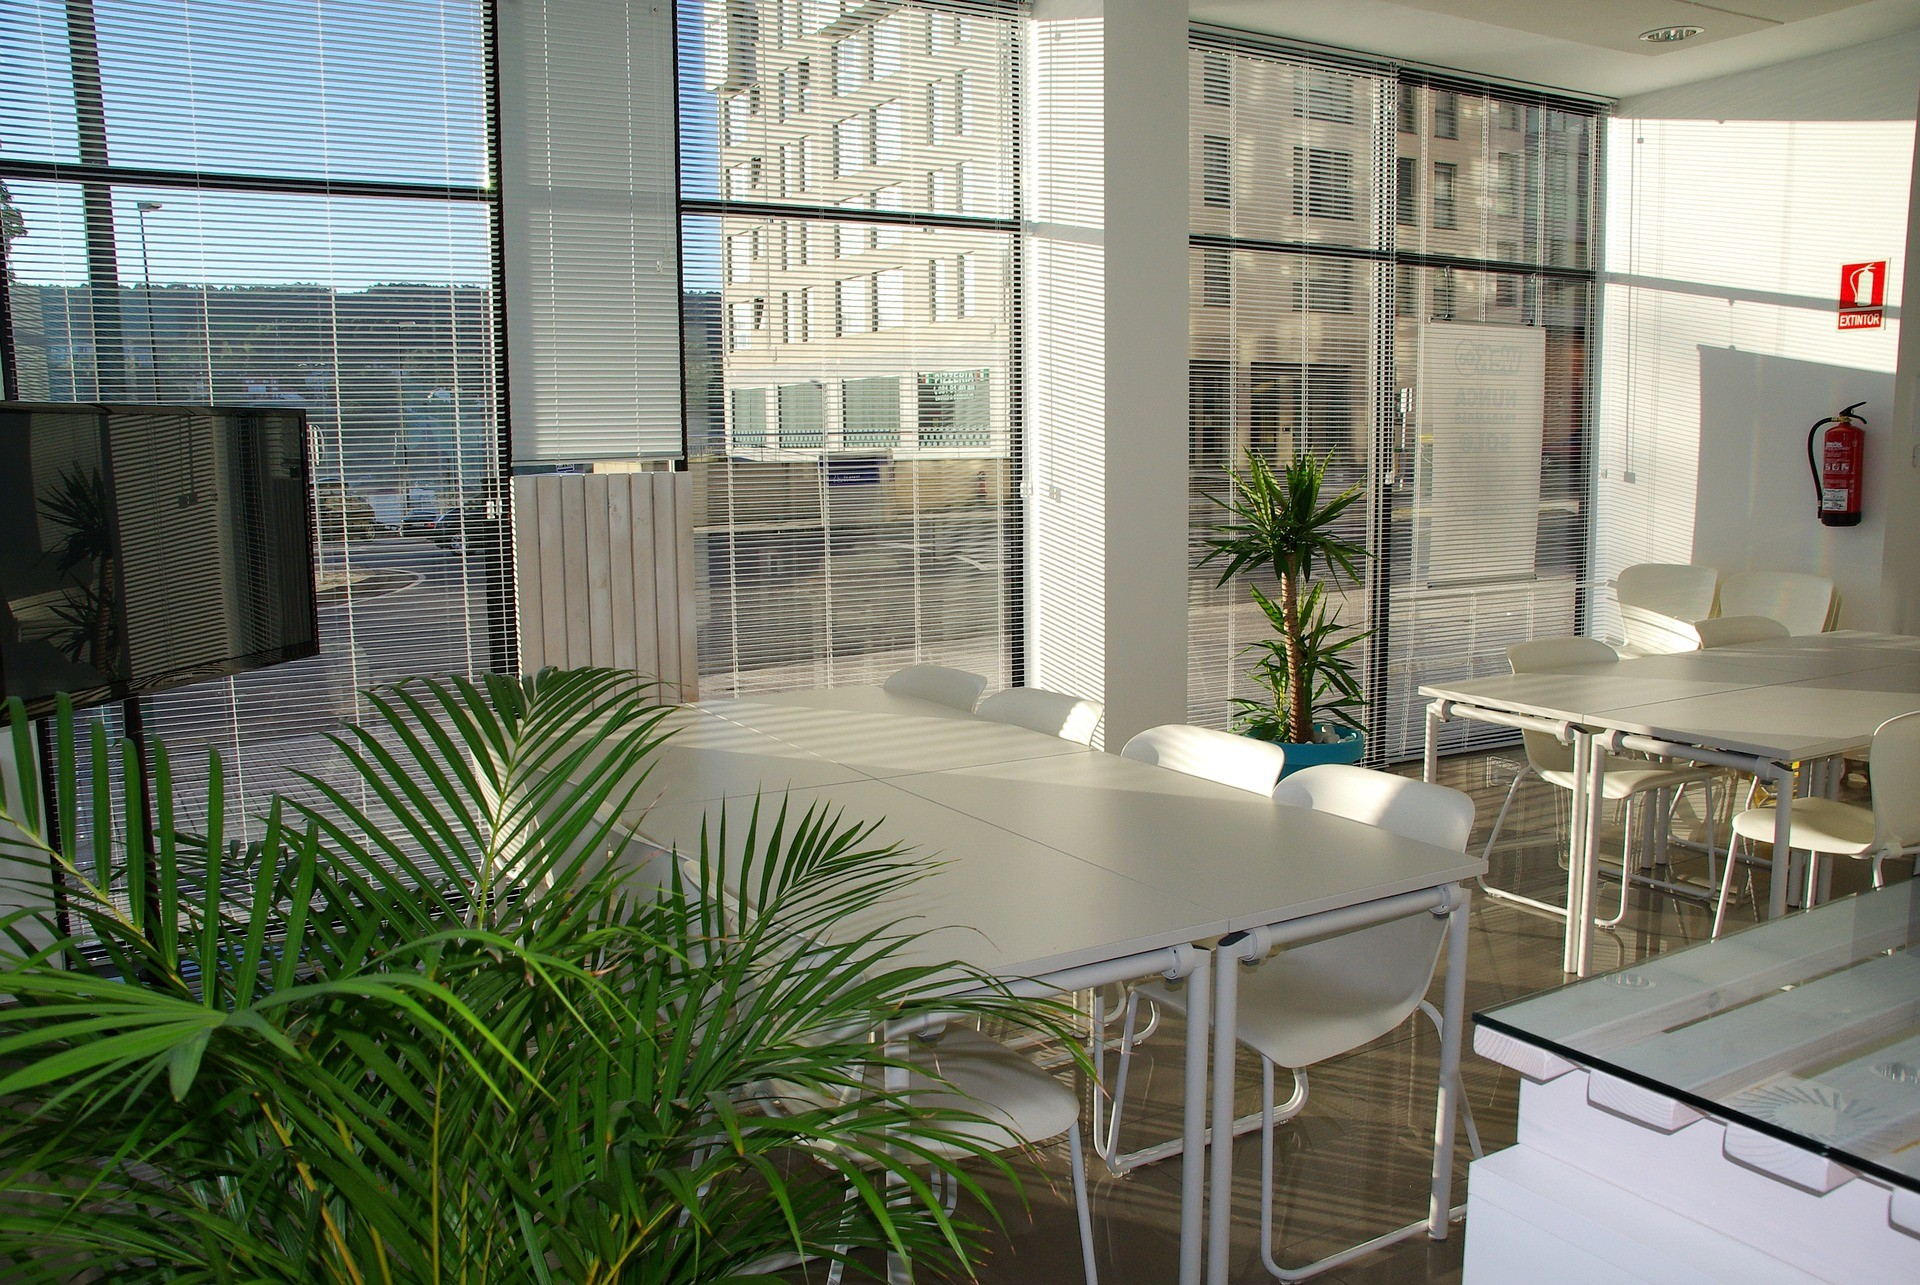 office environments are more pleasant when humidity is managed as part of the overall climate